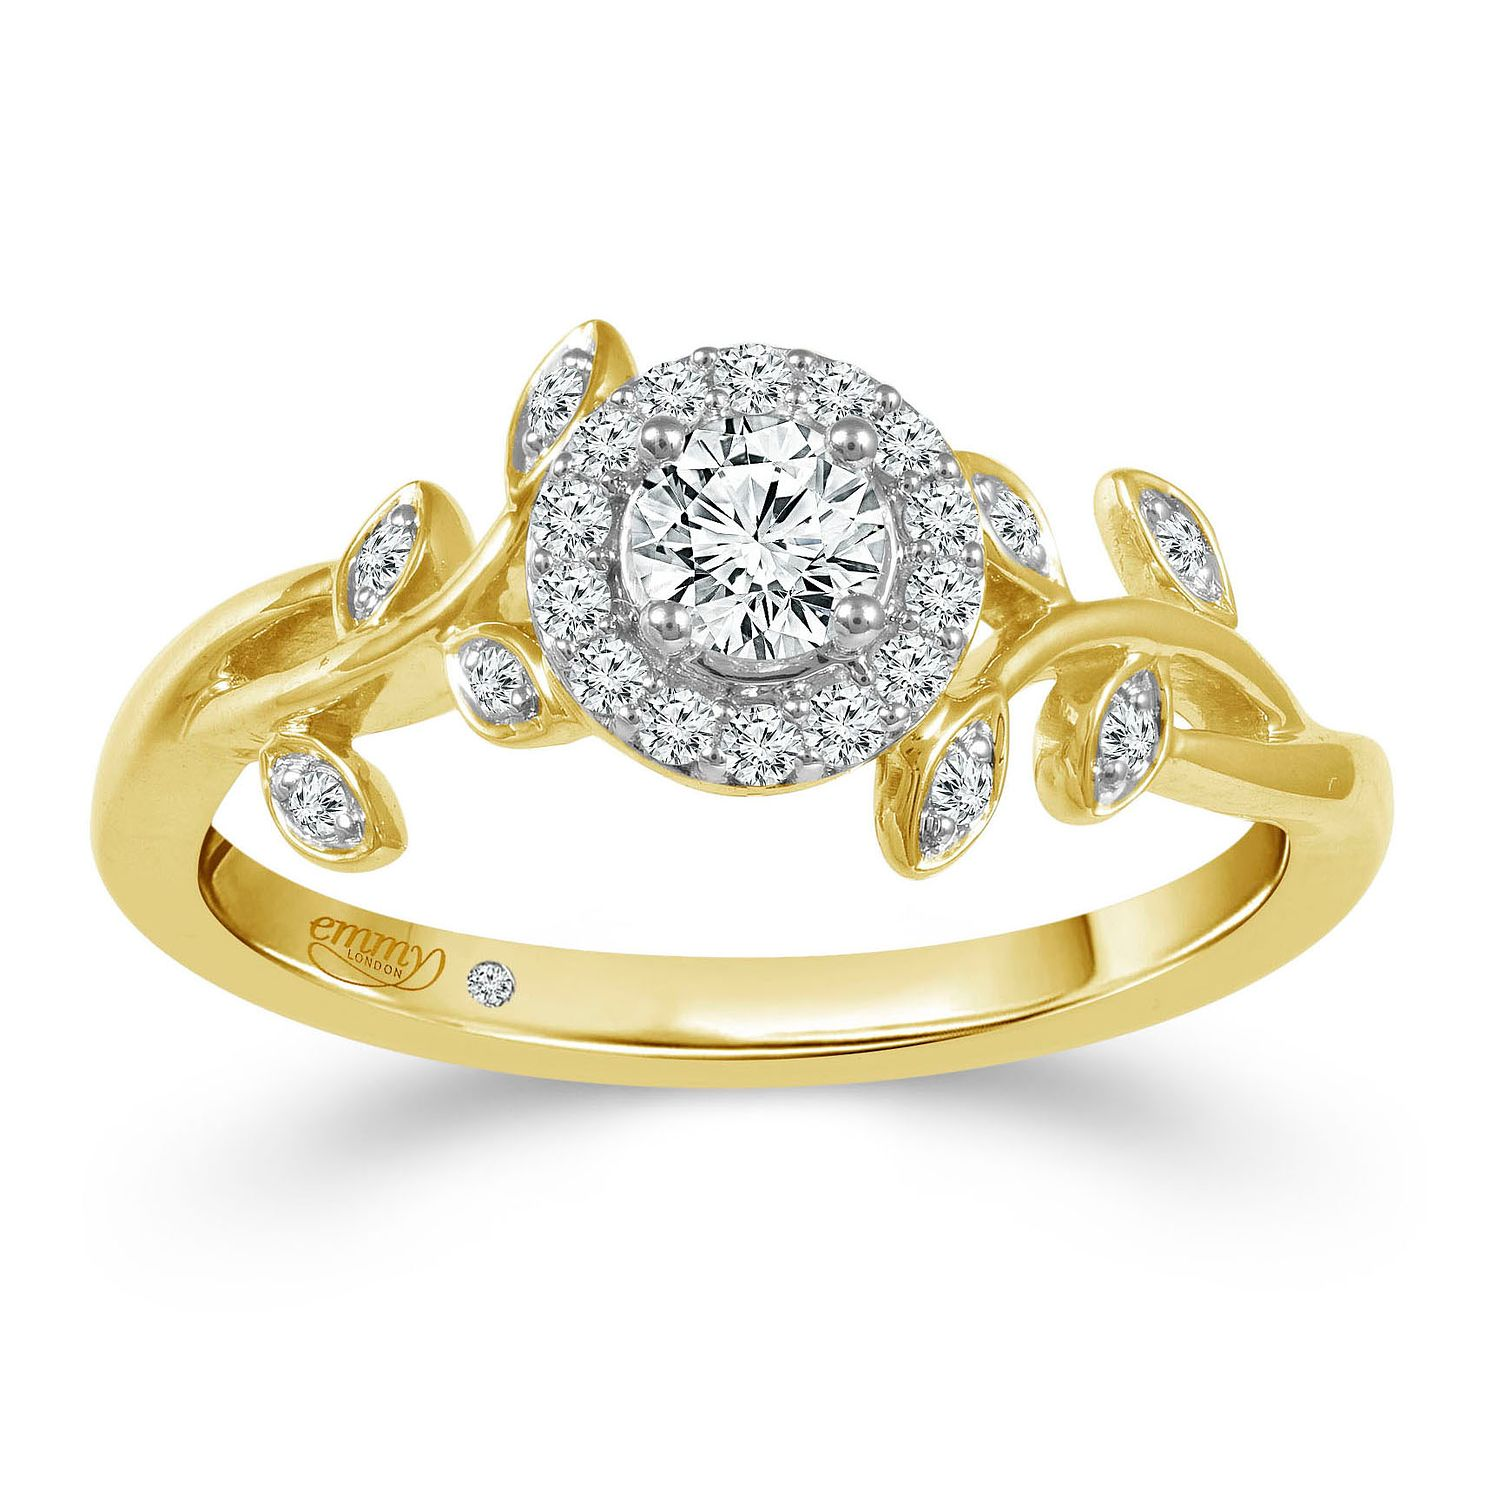 Emmy London 9ct Yellow Gold 1/3ct Diamond Leaf Halo Ring - Product number 2884844